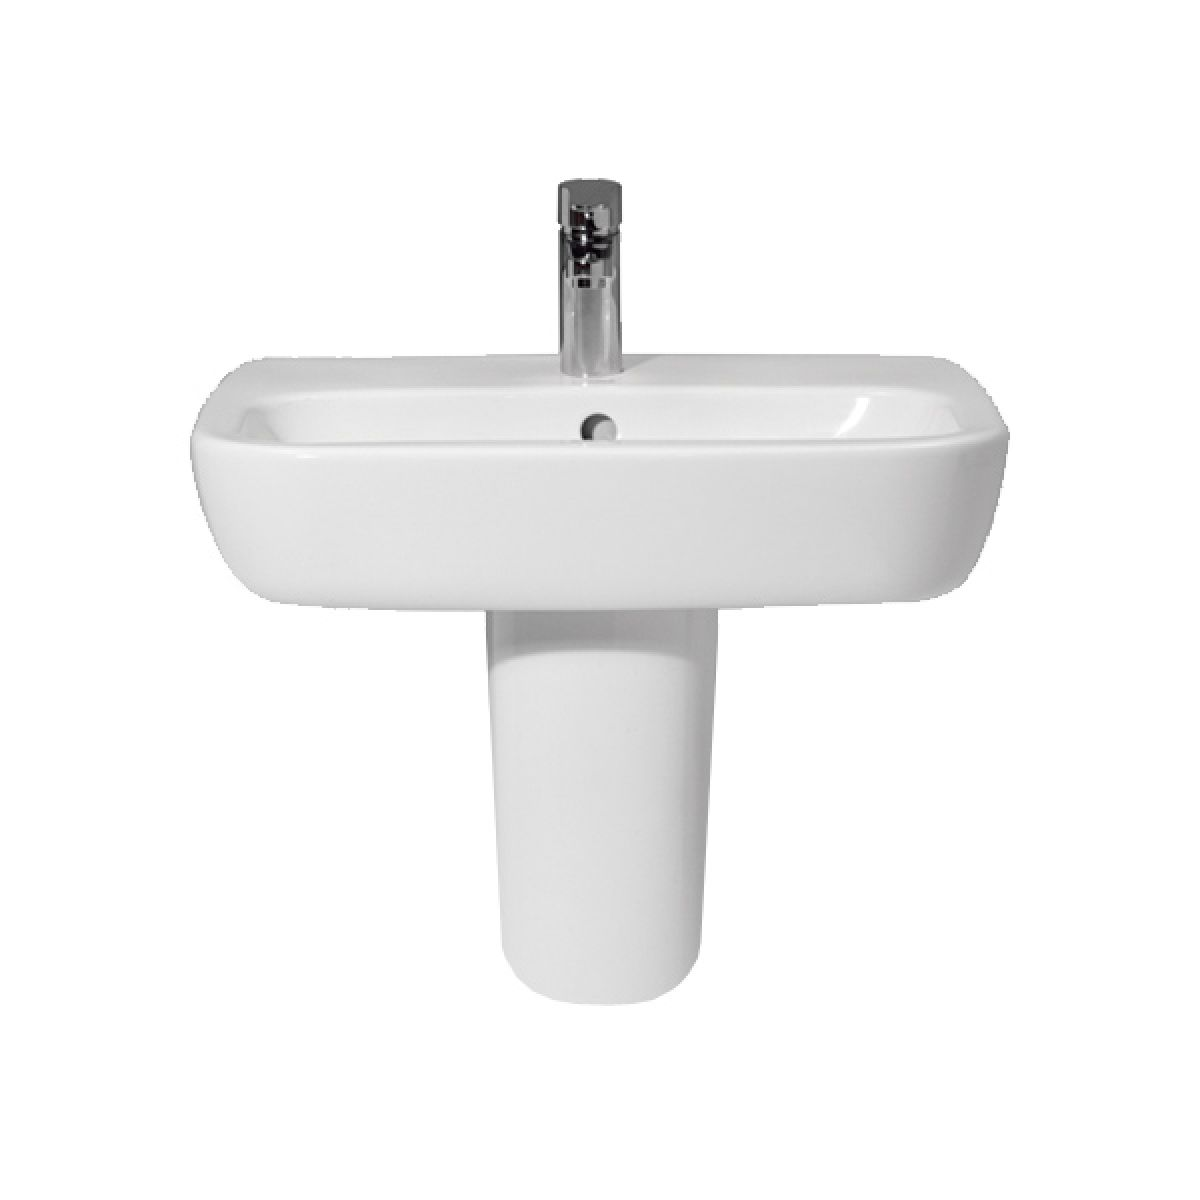 Frontline Petit2/Ballini Basin with Semi Pedestal 550mm